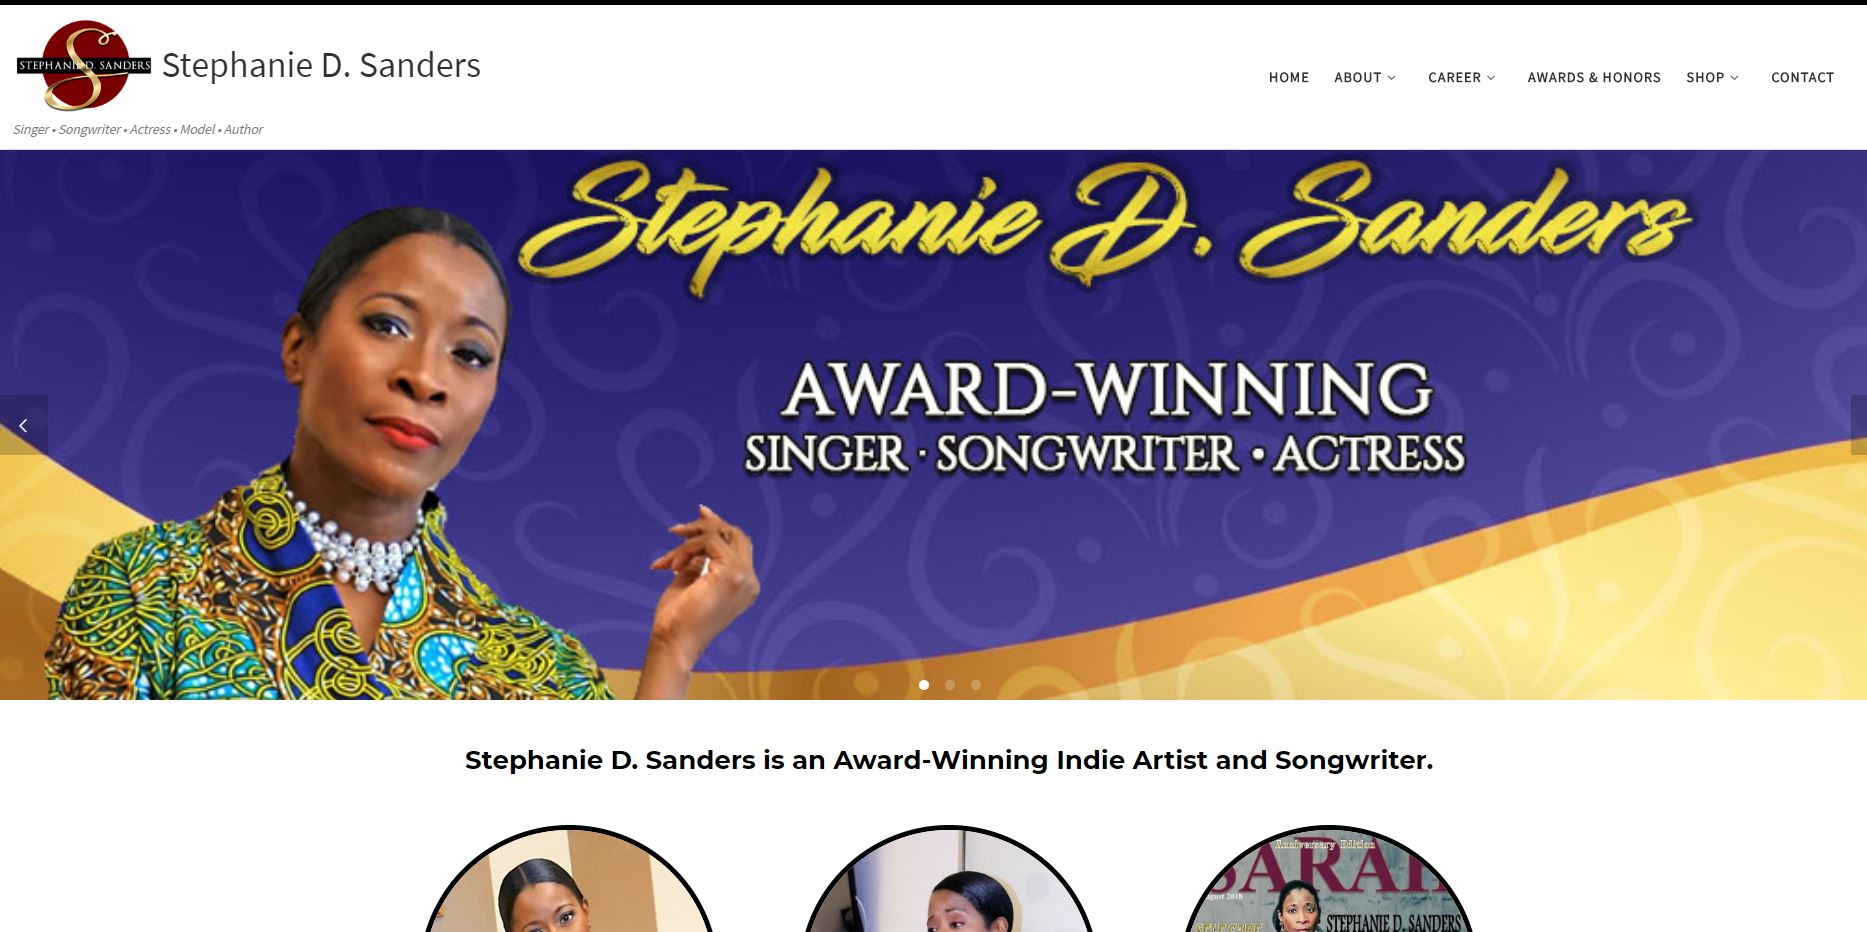 Website for Stephanie D. Sanders